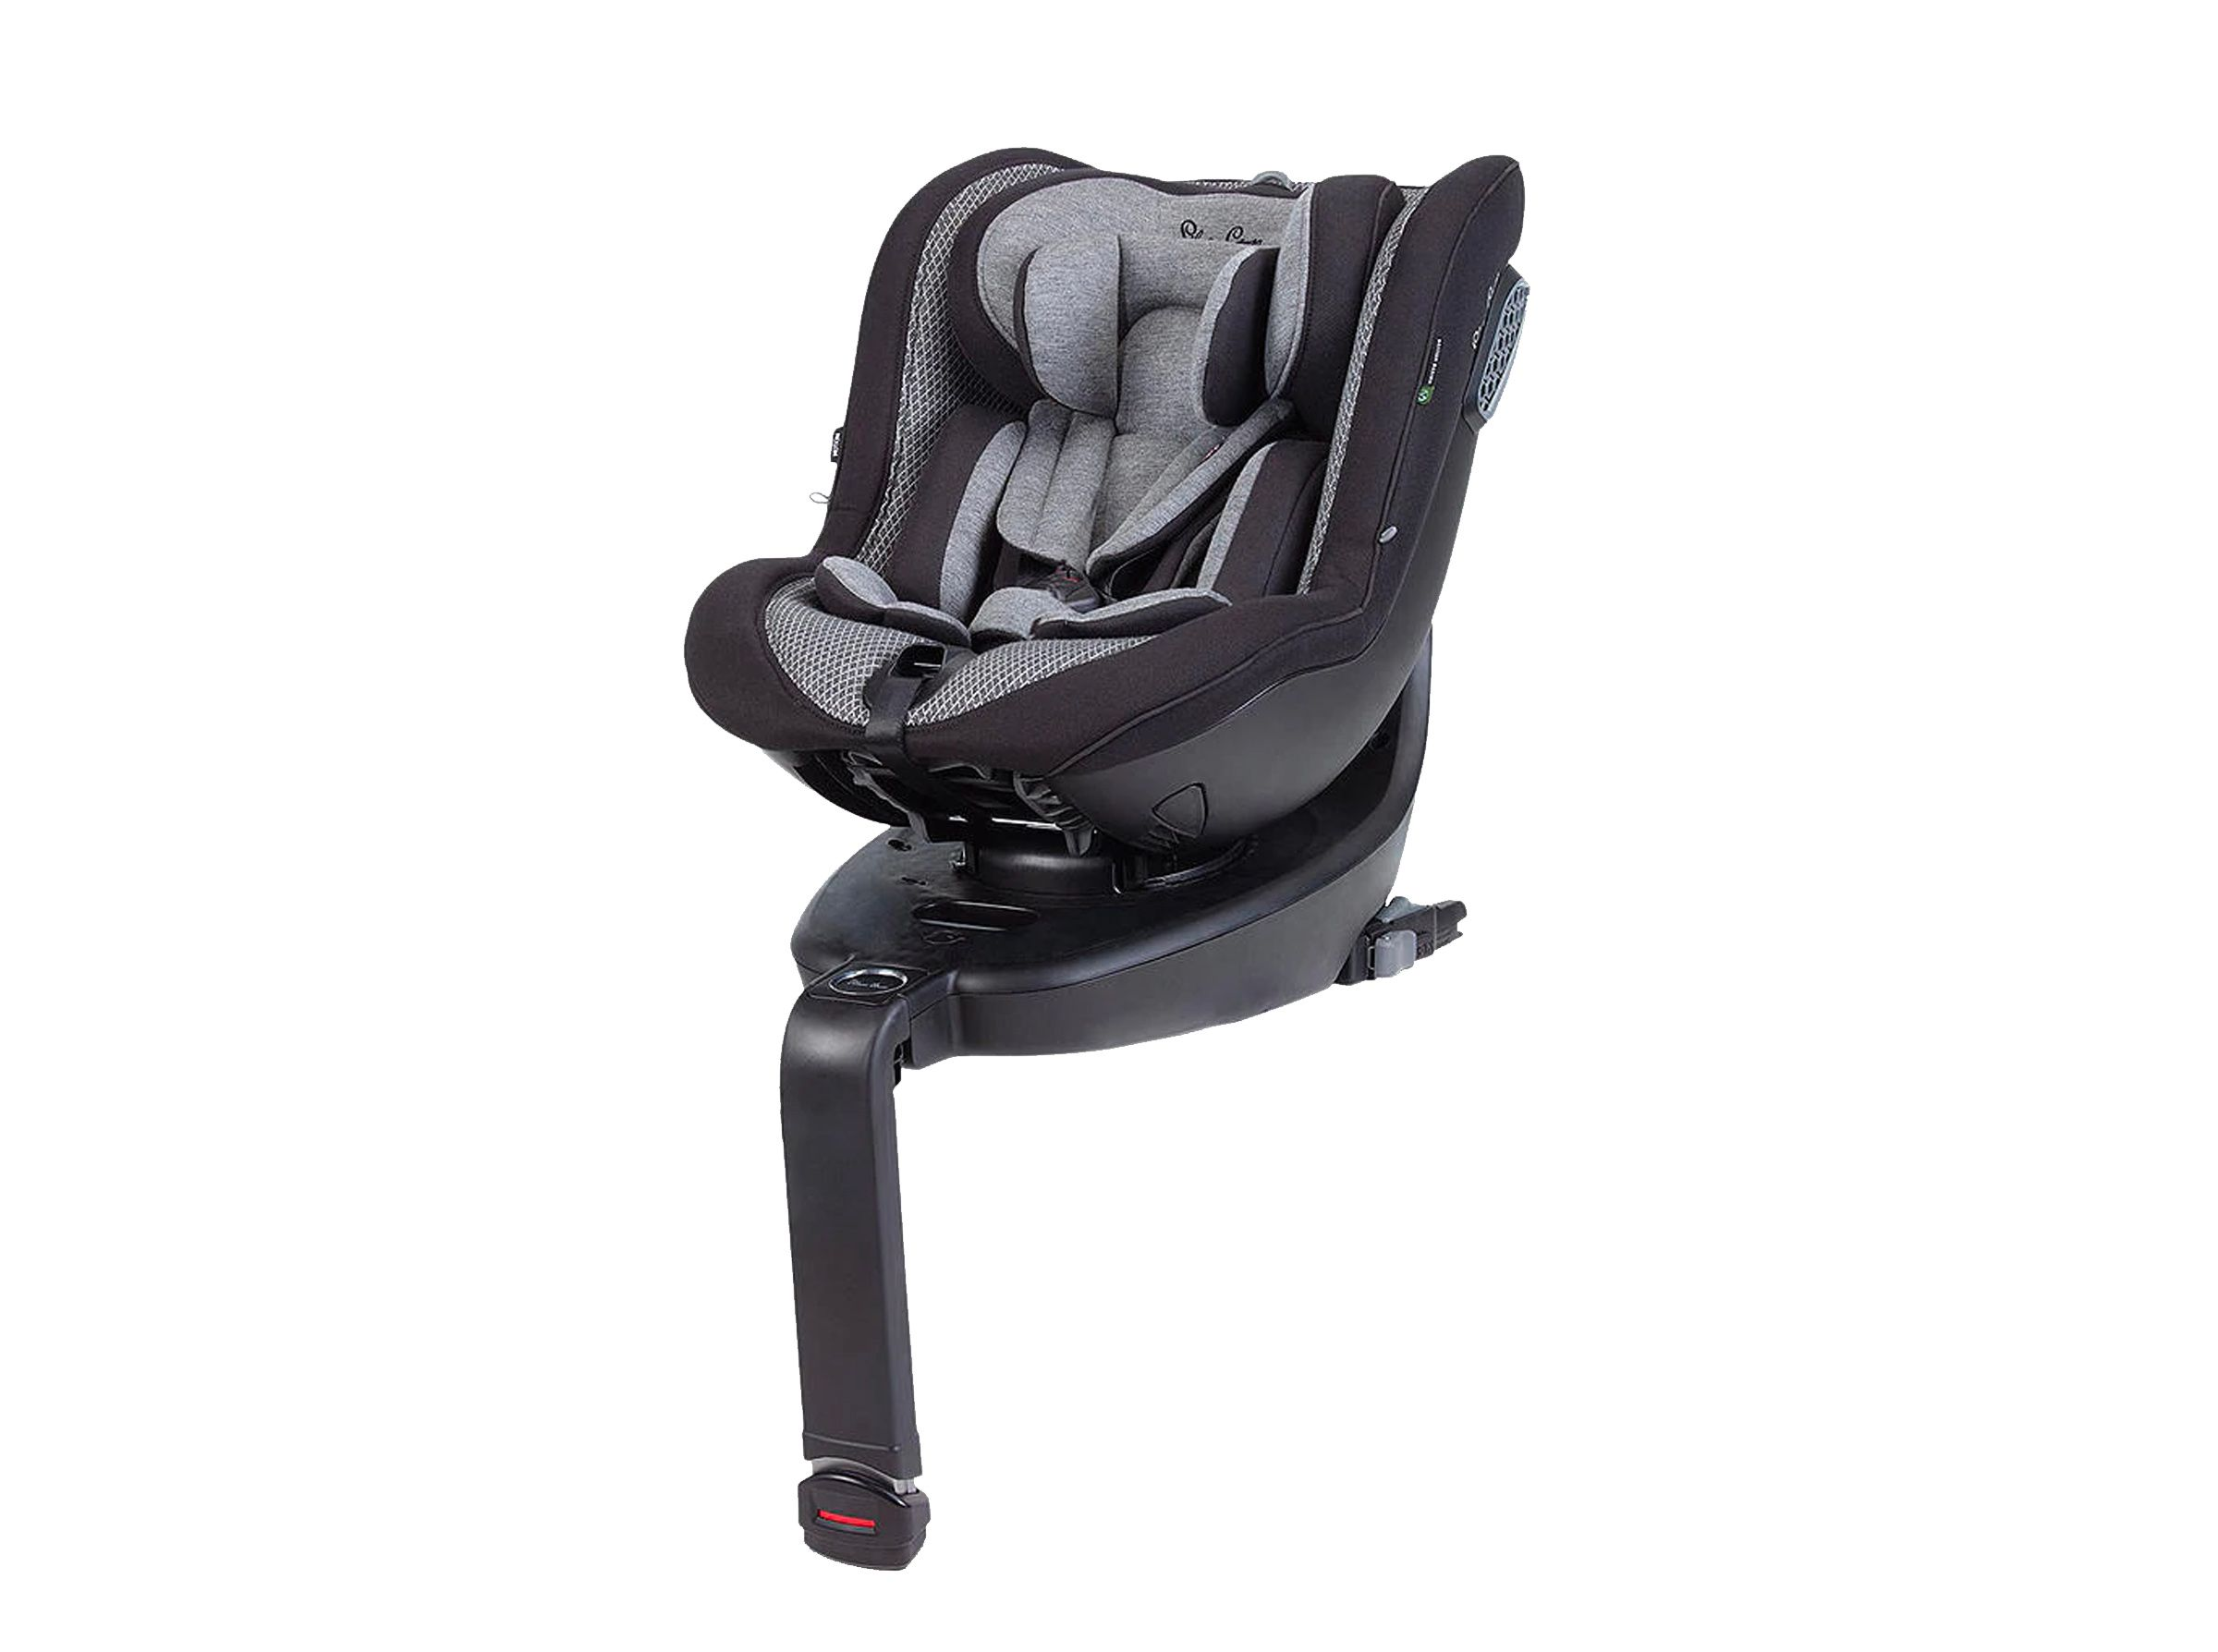 A group 1 car seat